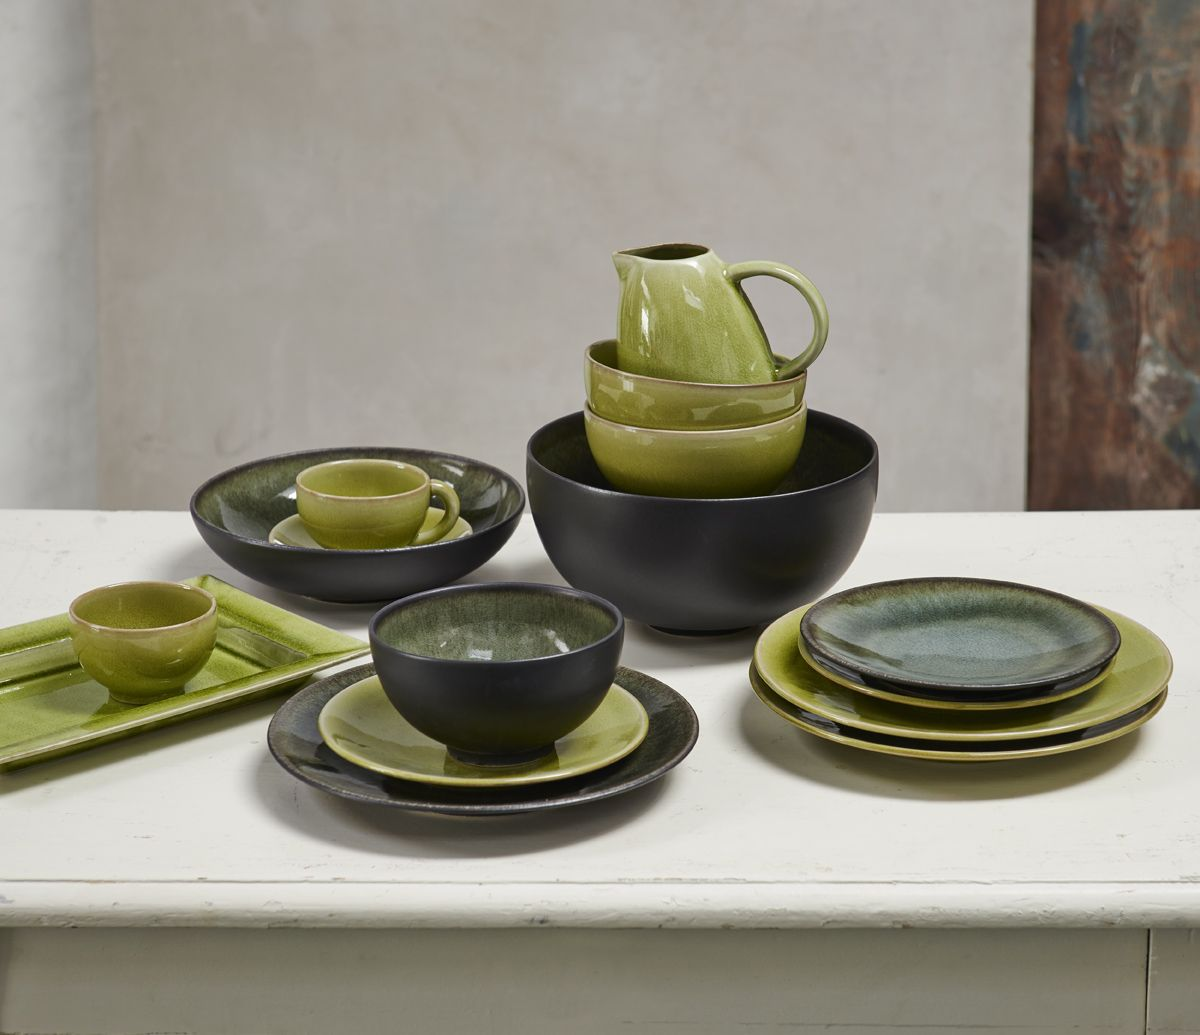 Jars France Dinnerware & Cantine Dinnerware By Jars France ...